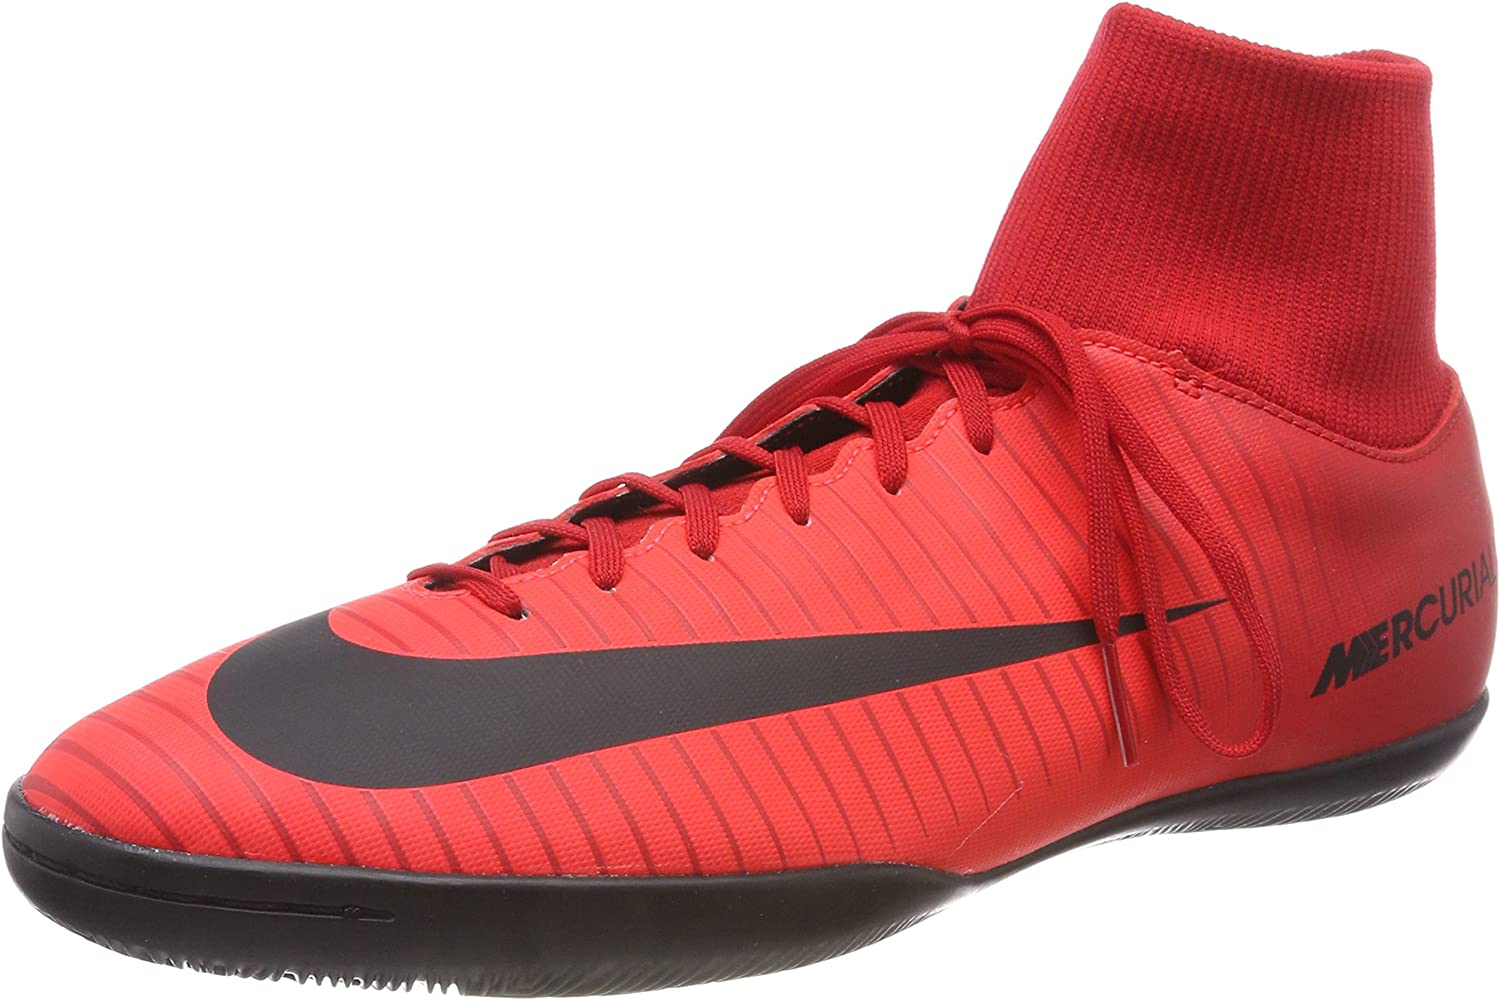 US, University Red//Black M 10.5 D Nike Mens Mercurial Victory VI Dyanamic Fit IC Indoor Soccer Shoes